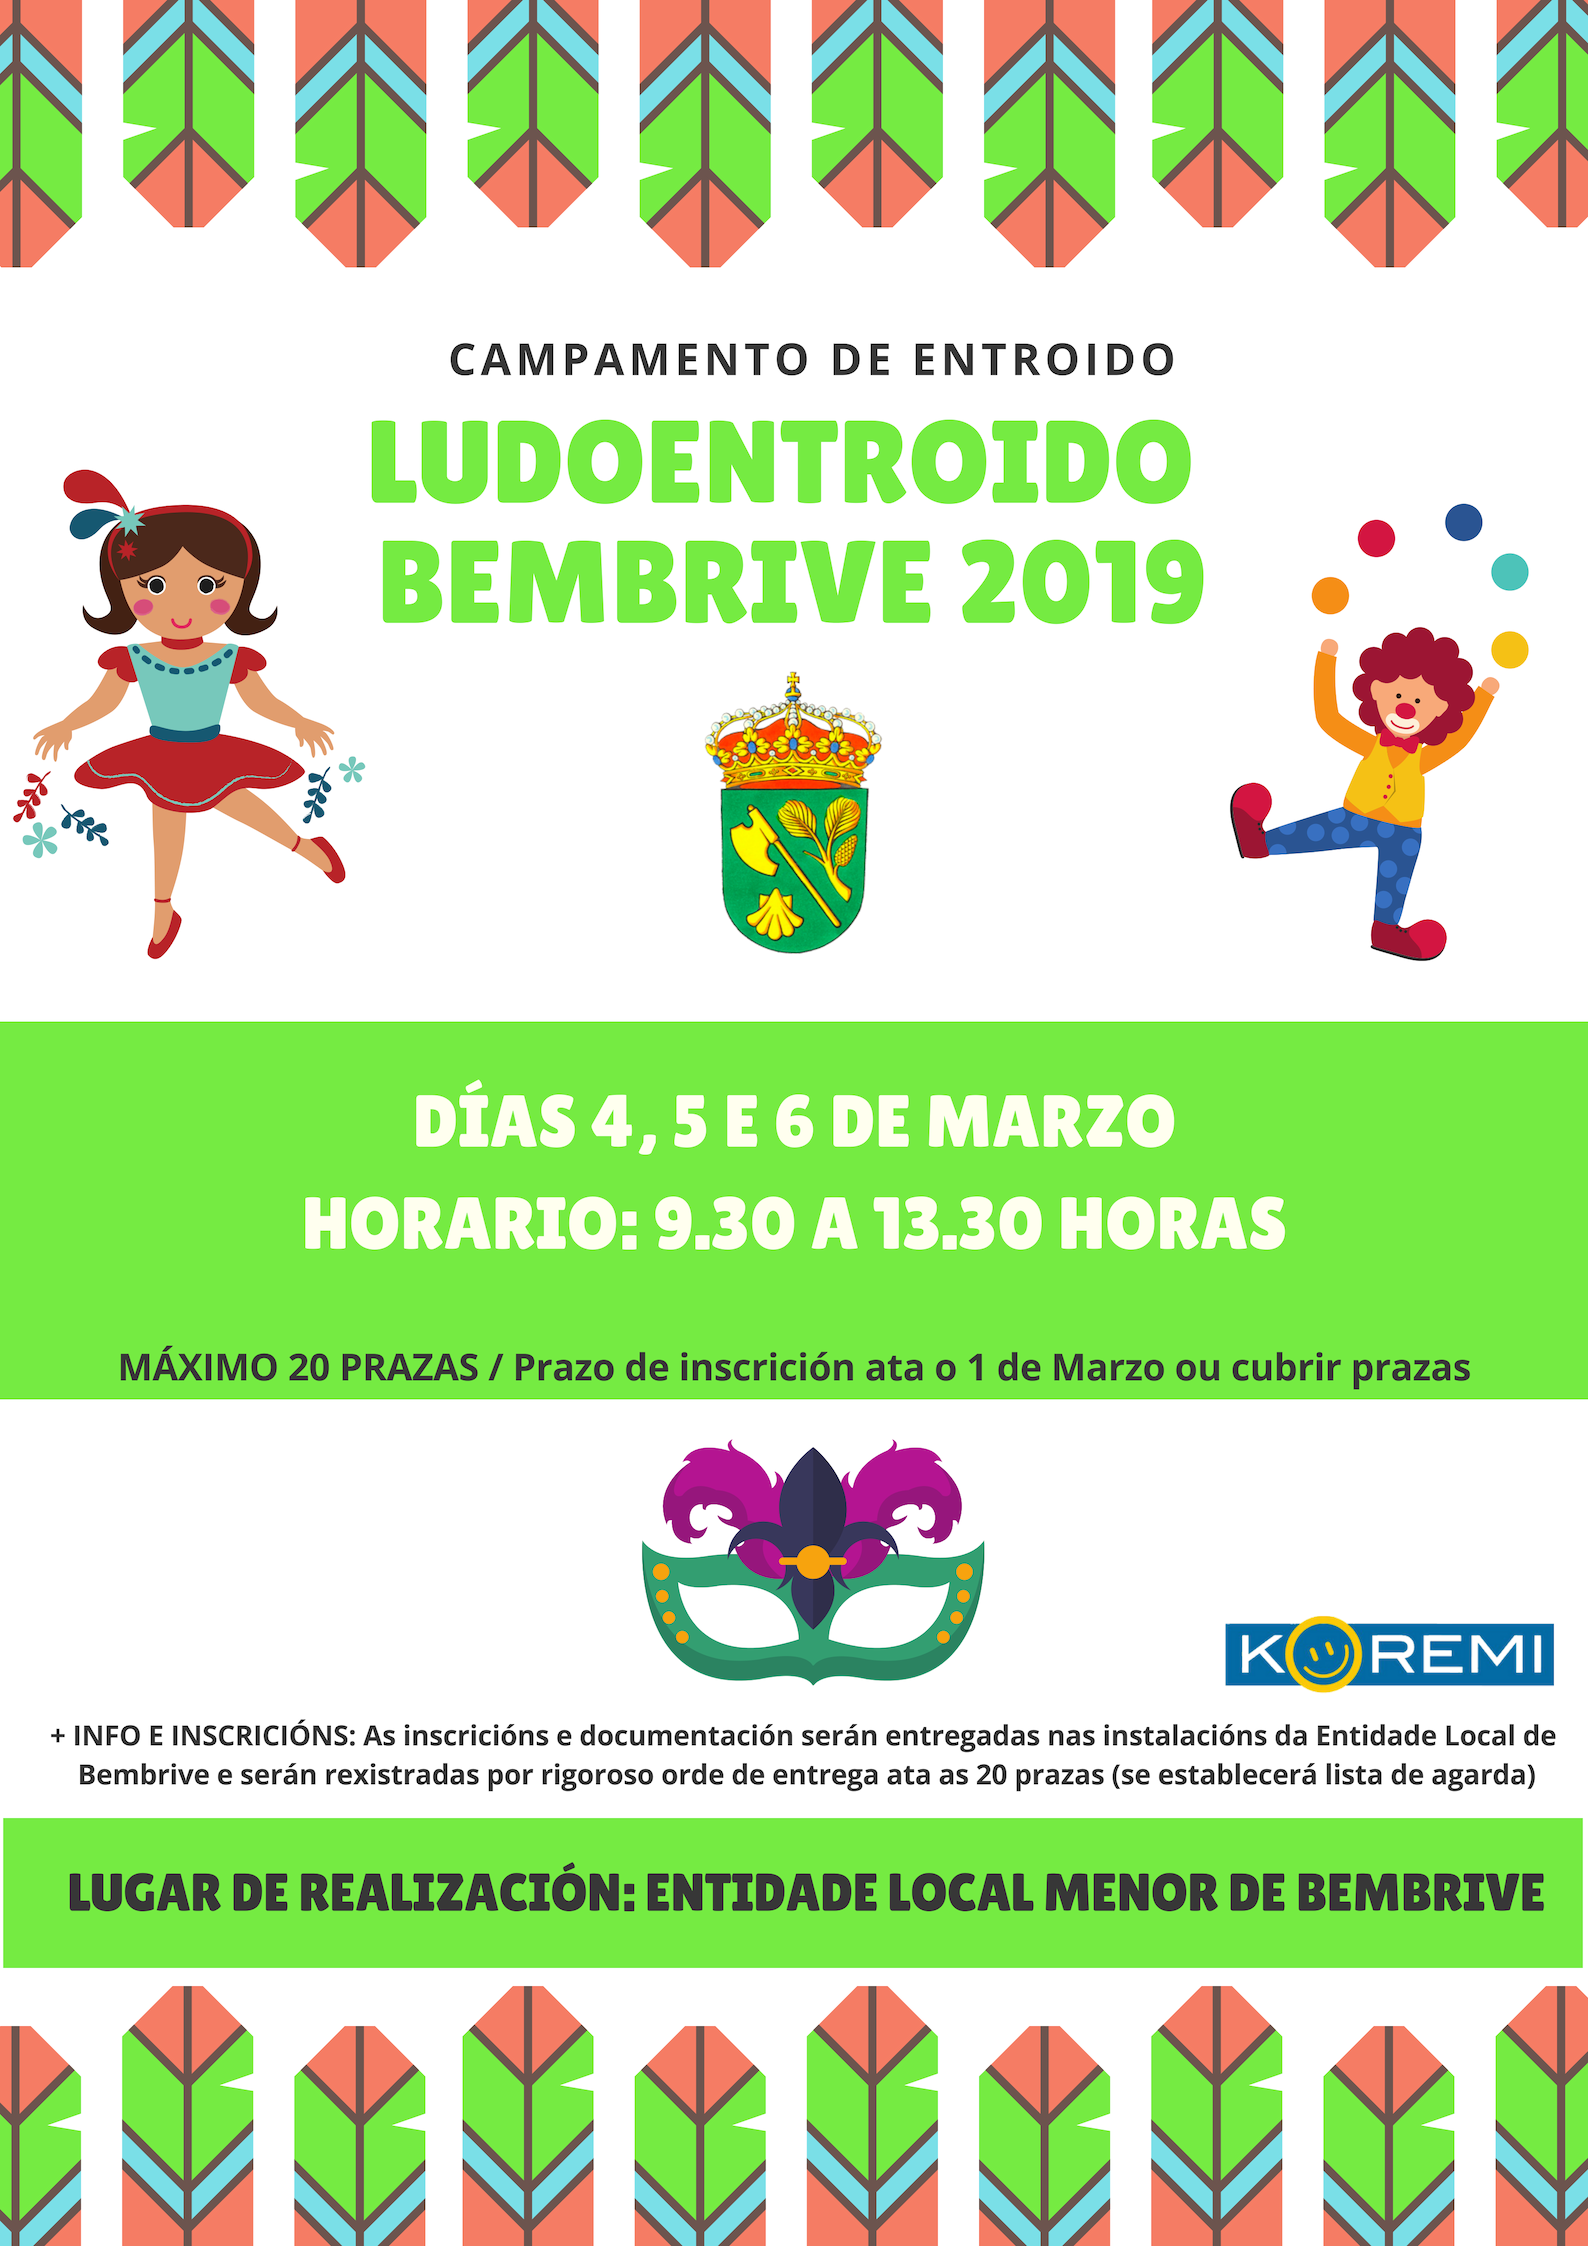 LudoEntroido Bembrive 2019